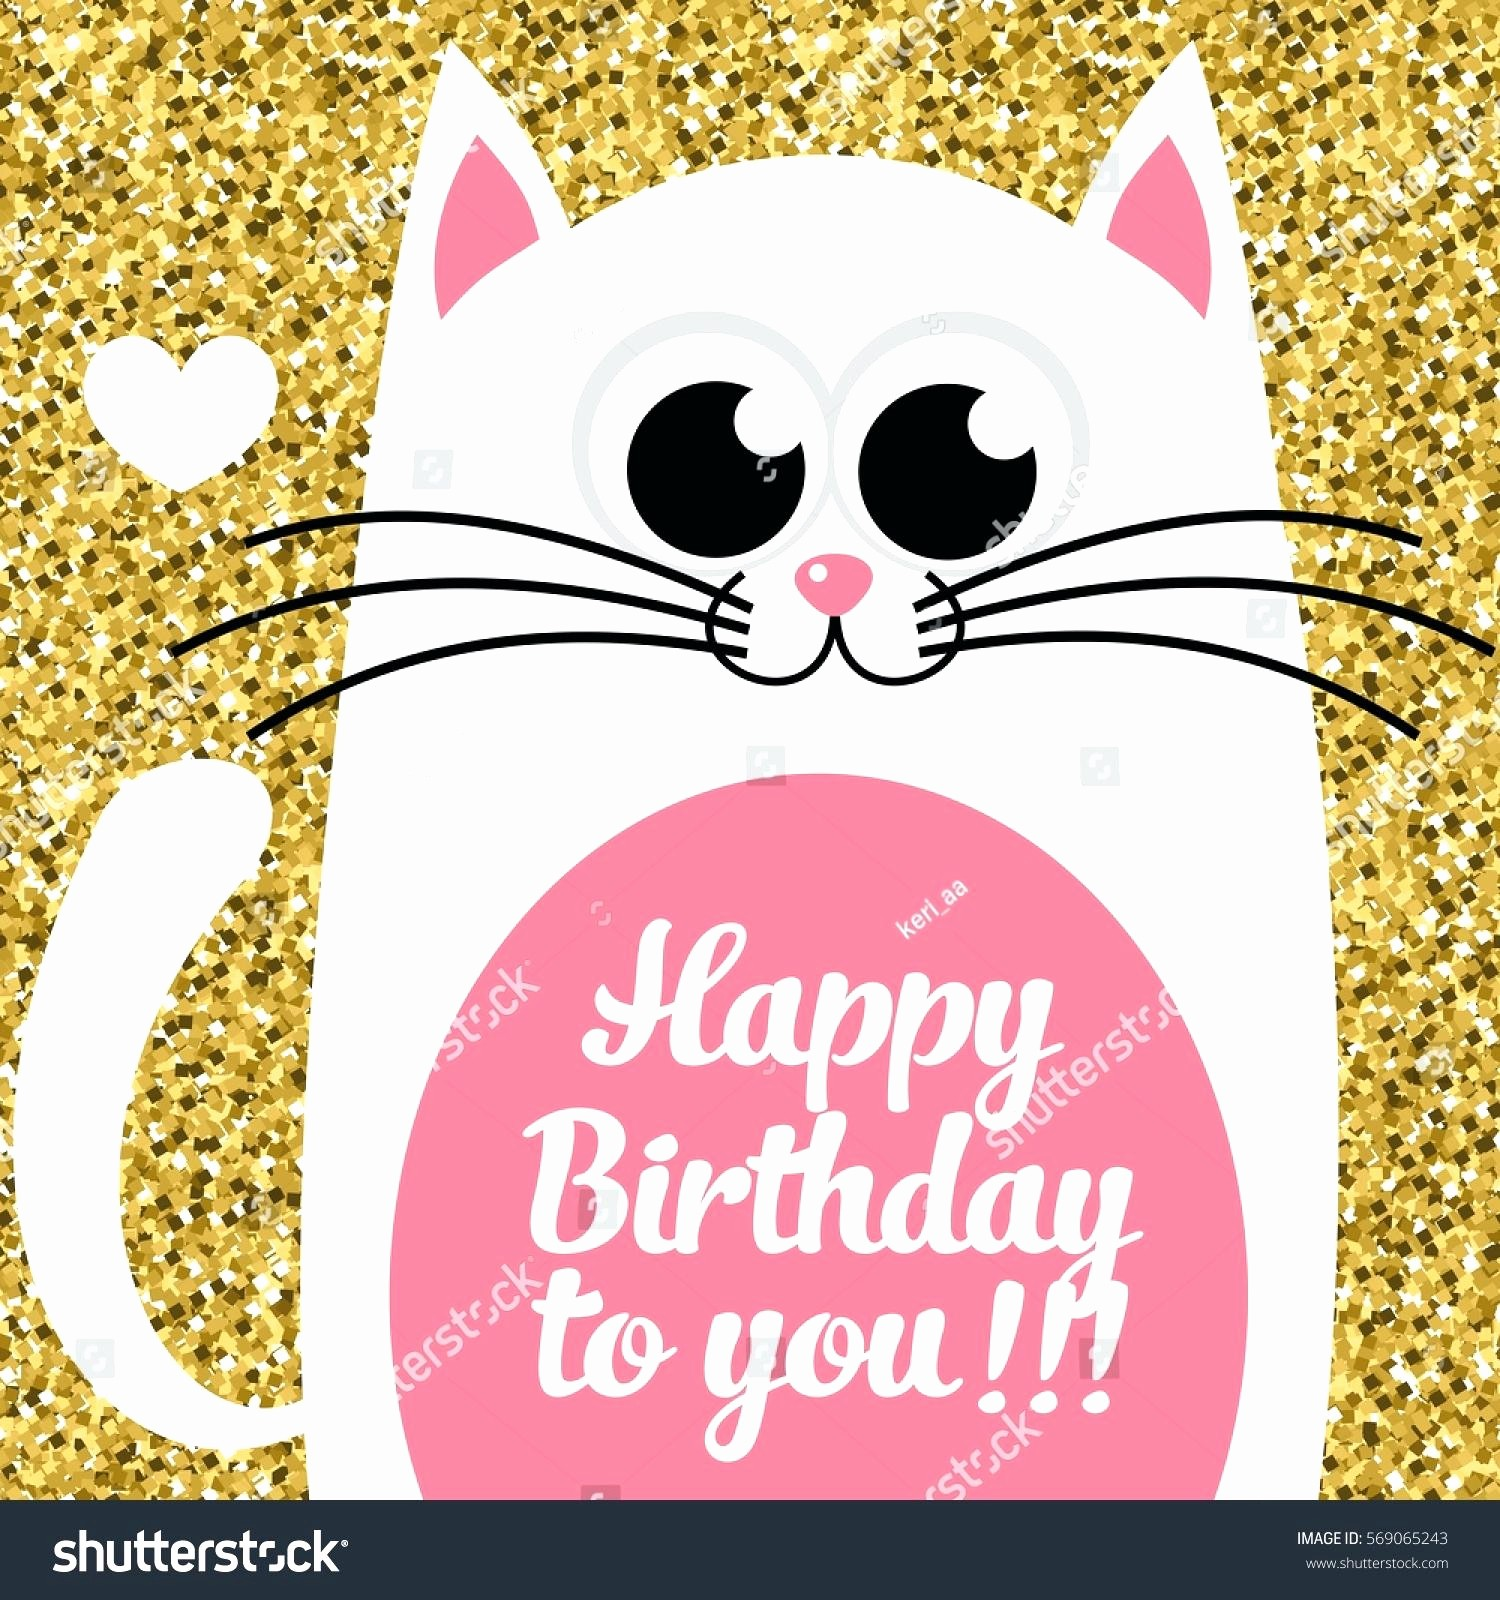 Microsoft Word Birthday Card Templates Awesome Template Word Happy Birthday Template